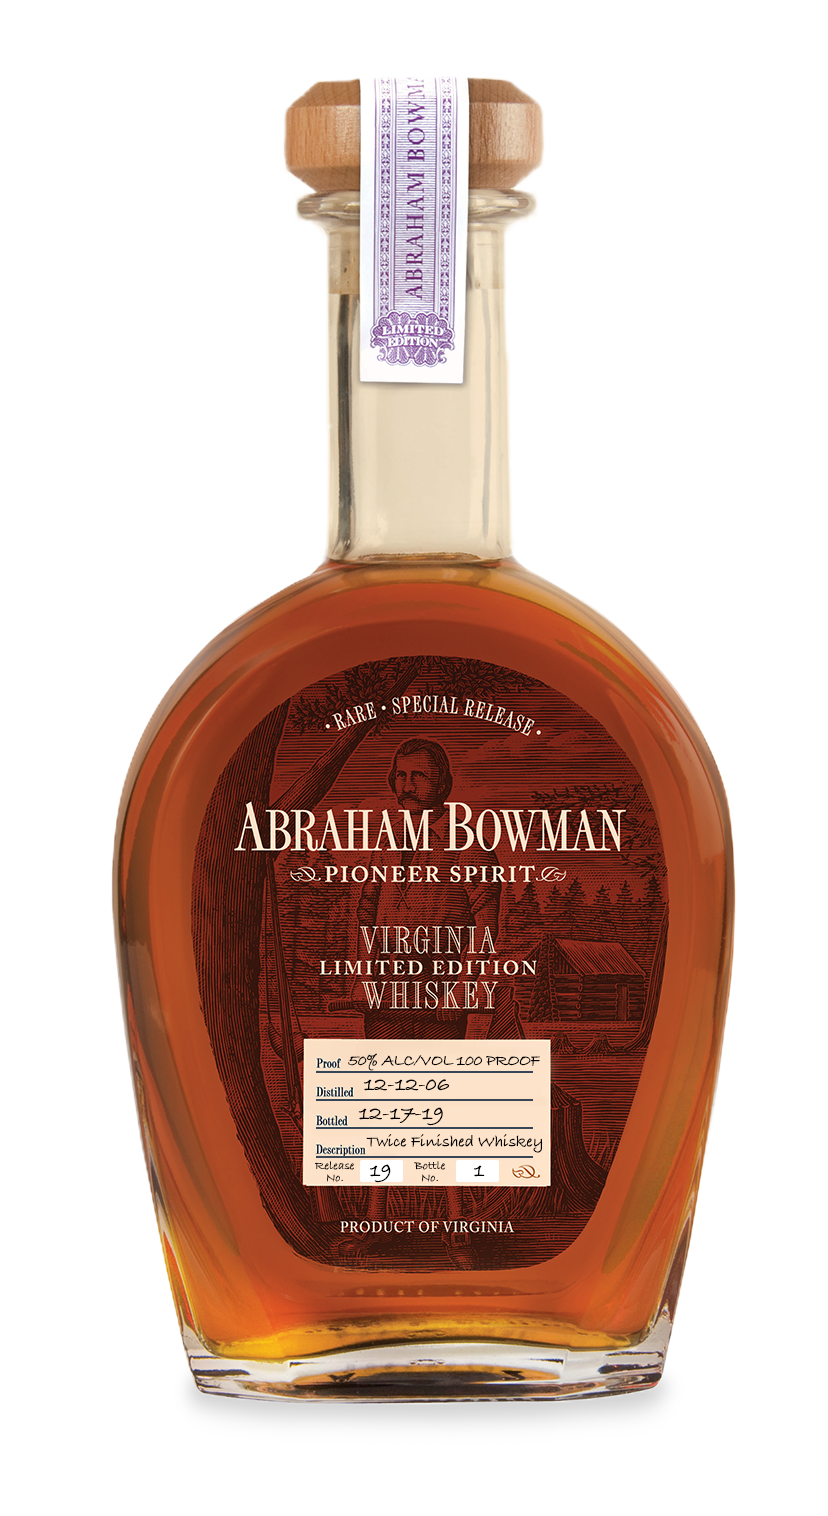 Abraham Bowman | Release 19 | Twice Finished Whiskey | A. Smith Bowman Distillery